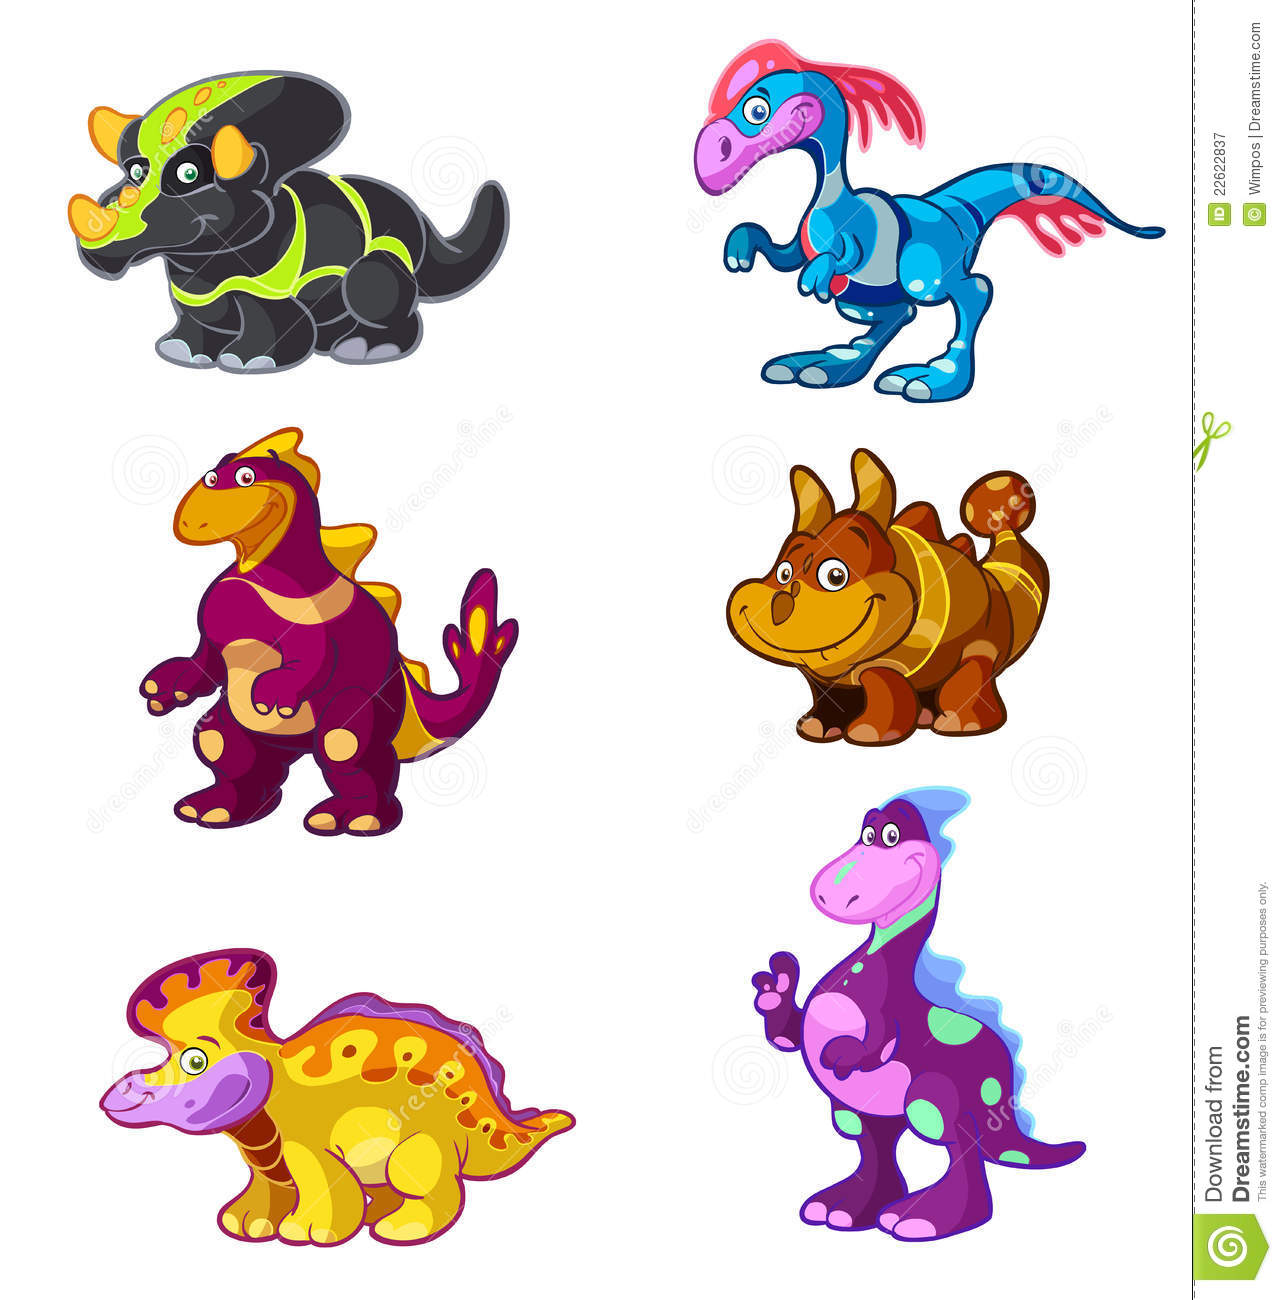 Cute Cartoon Dino Set Royalty Free Stock Photography - Image: 22622837